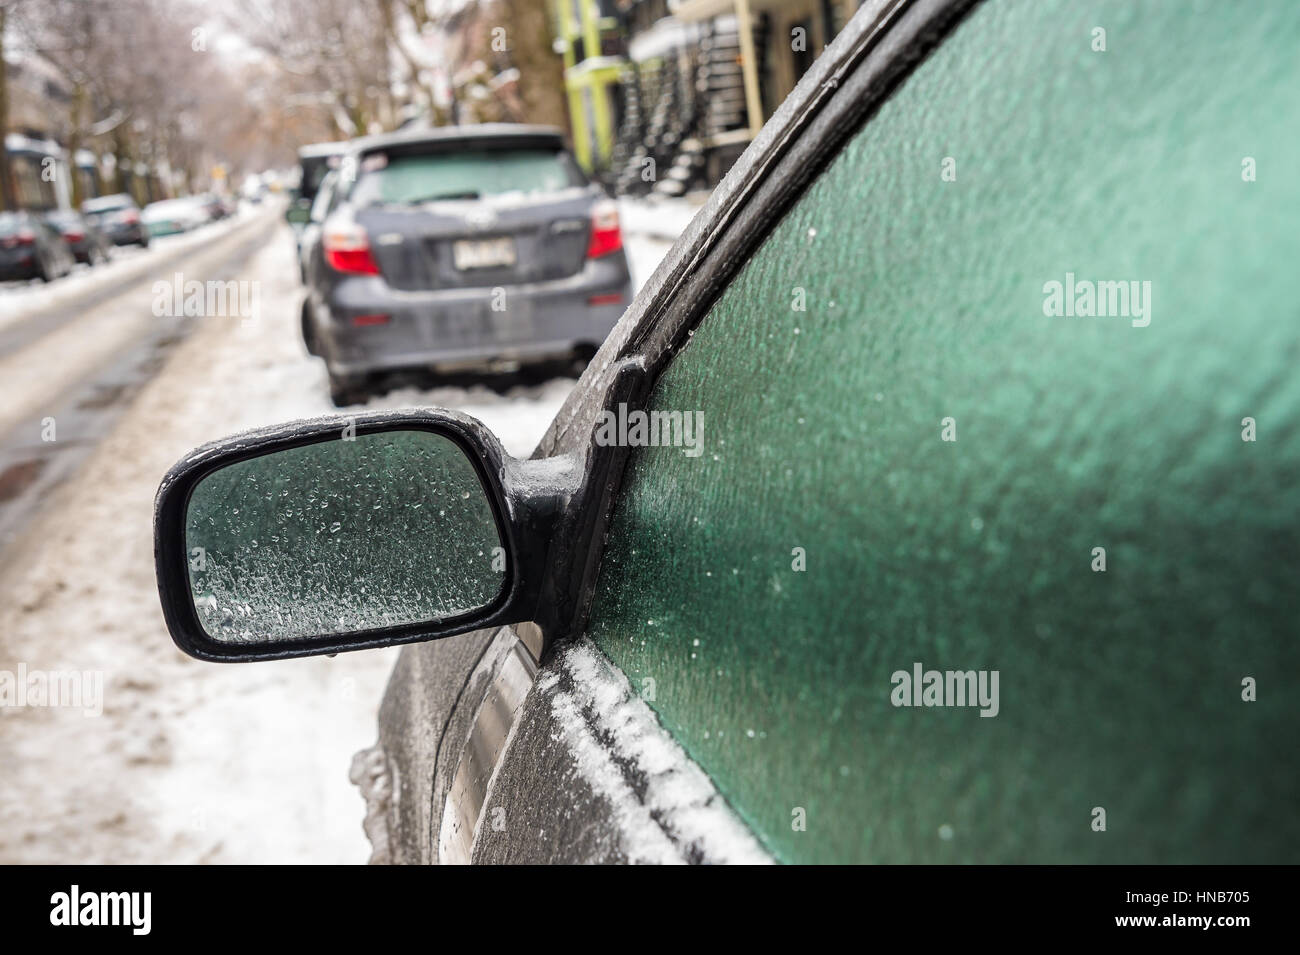 Montreal, CA, 29th February 2016. Car mirror and windows are covered with ice after freezing rain. - Stock Image